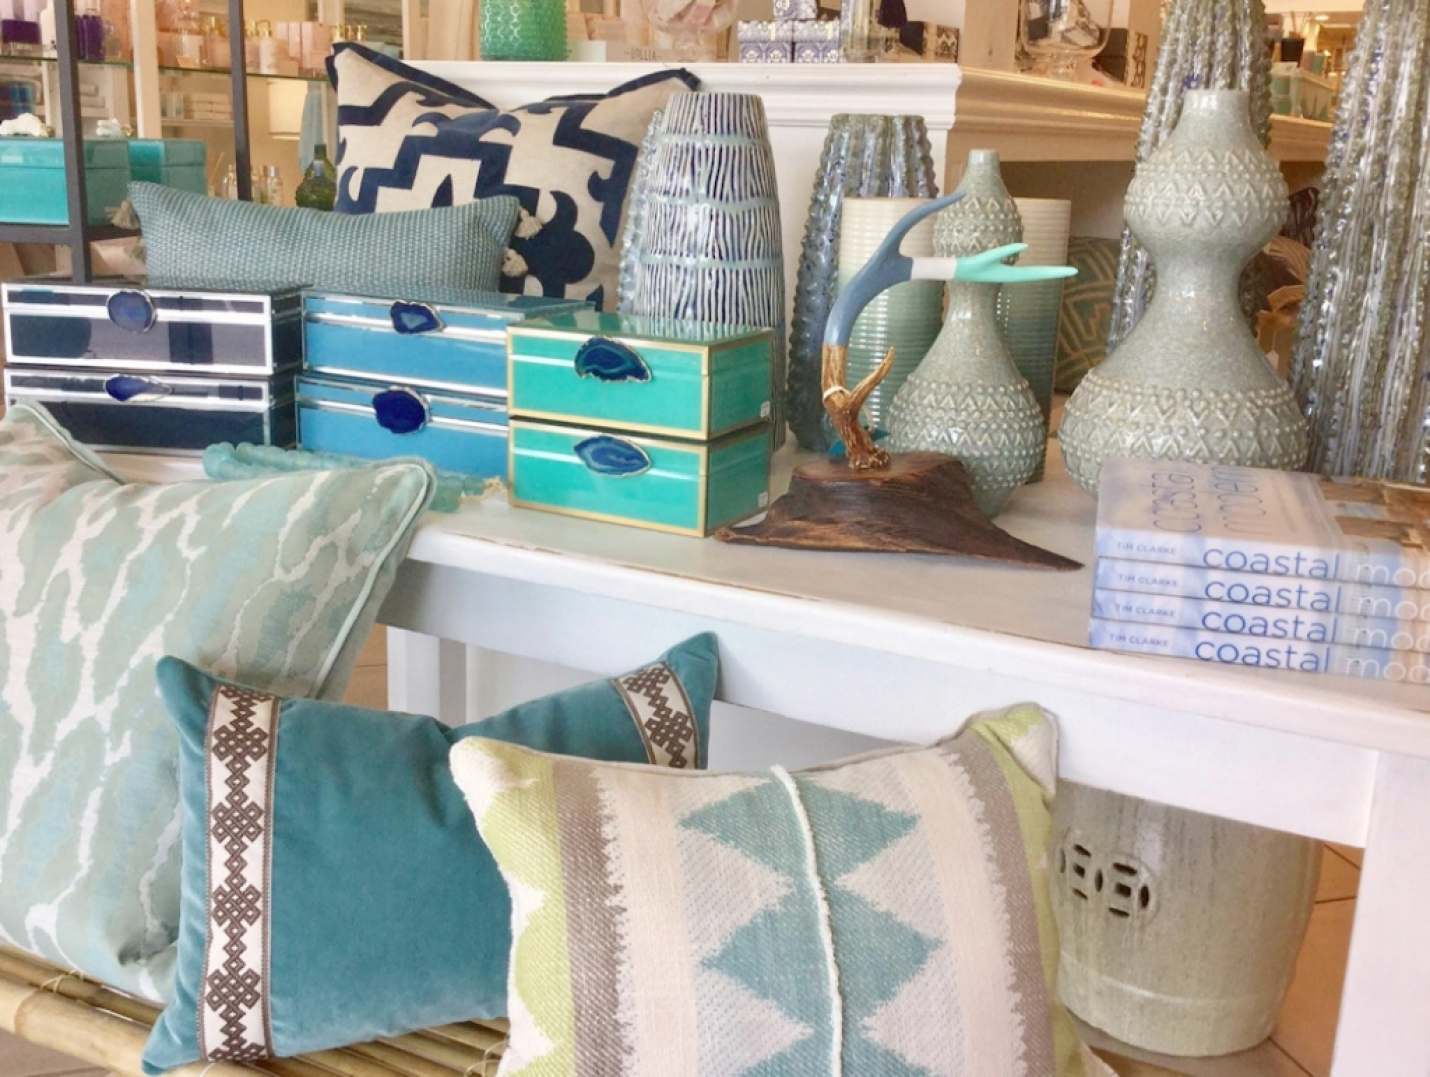 Crabby Chic: Come See What's New